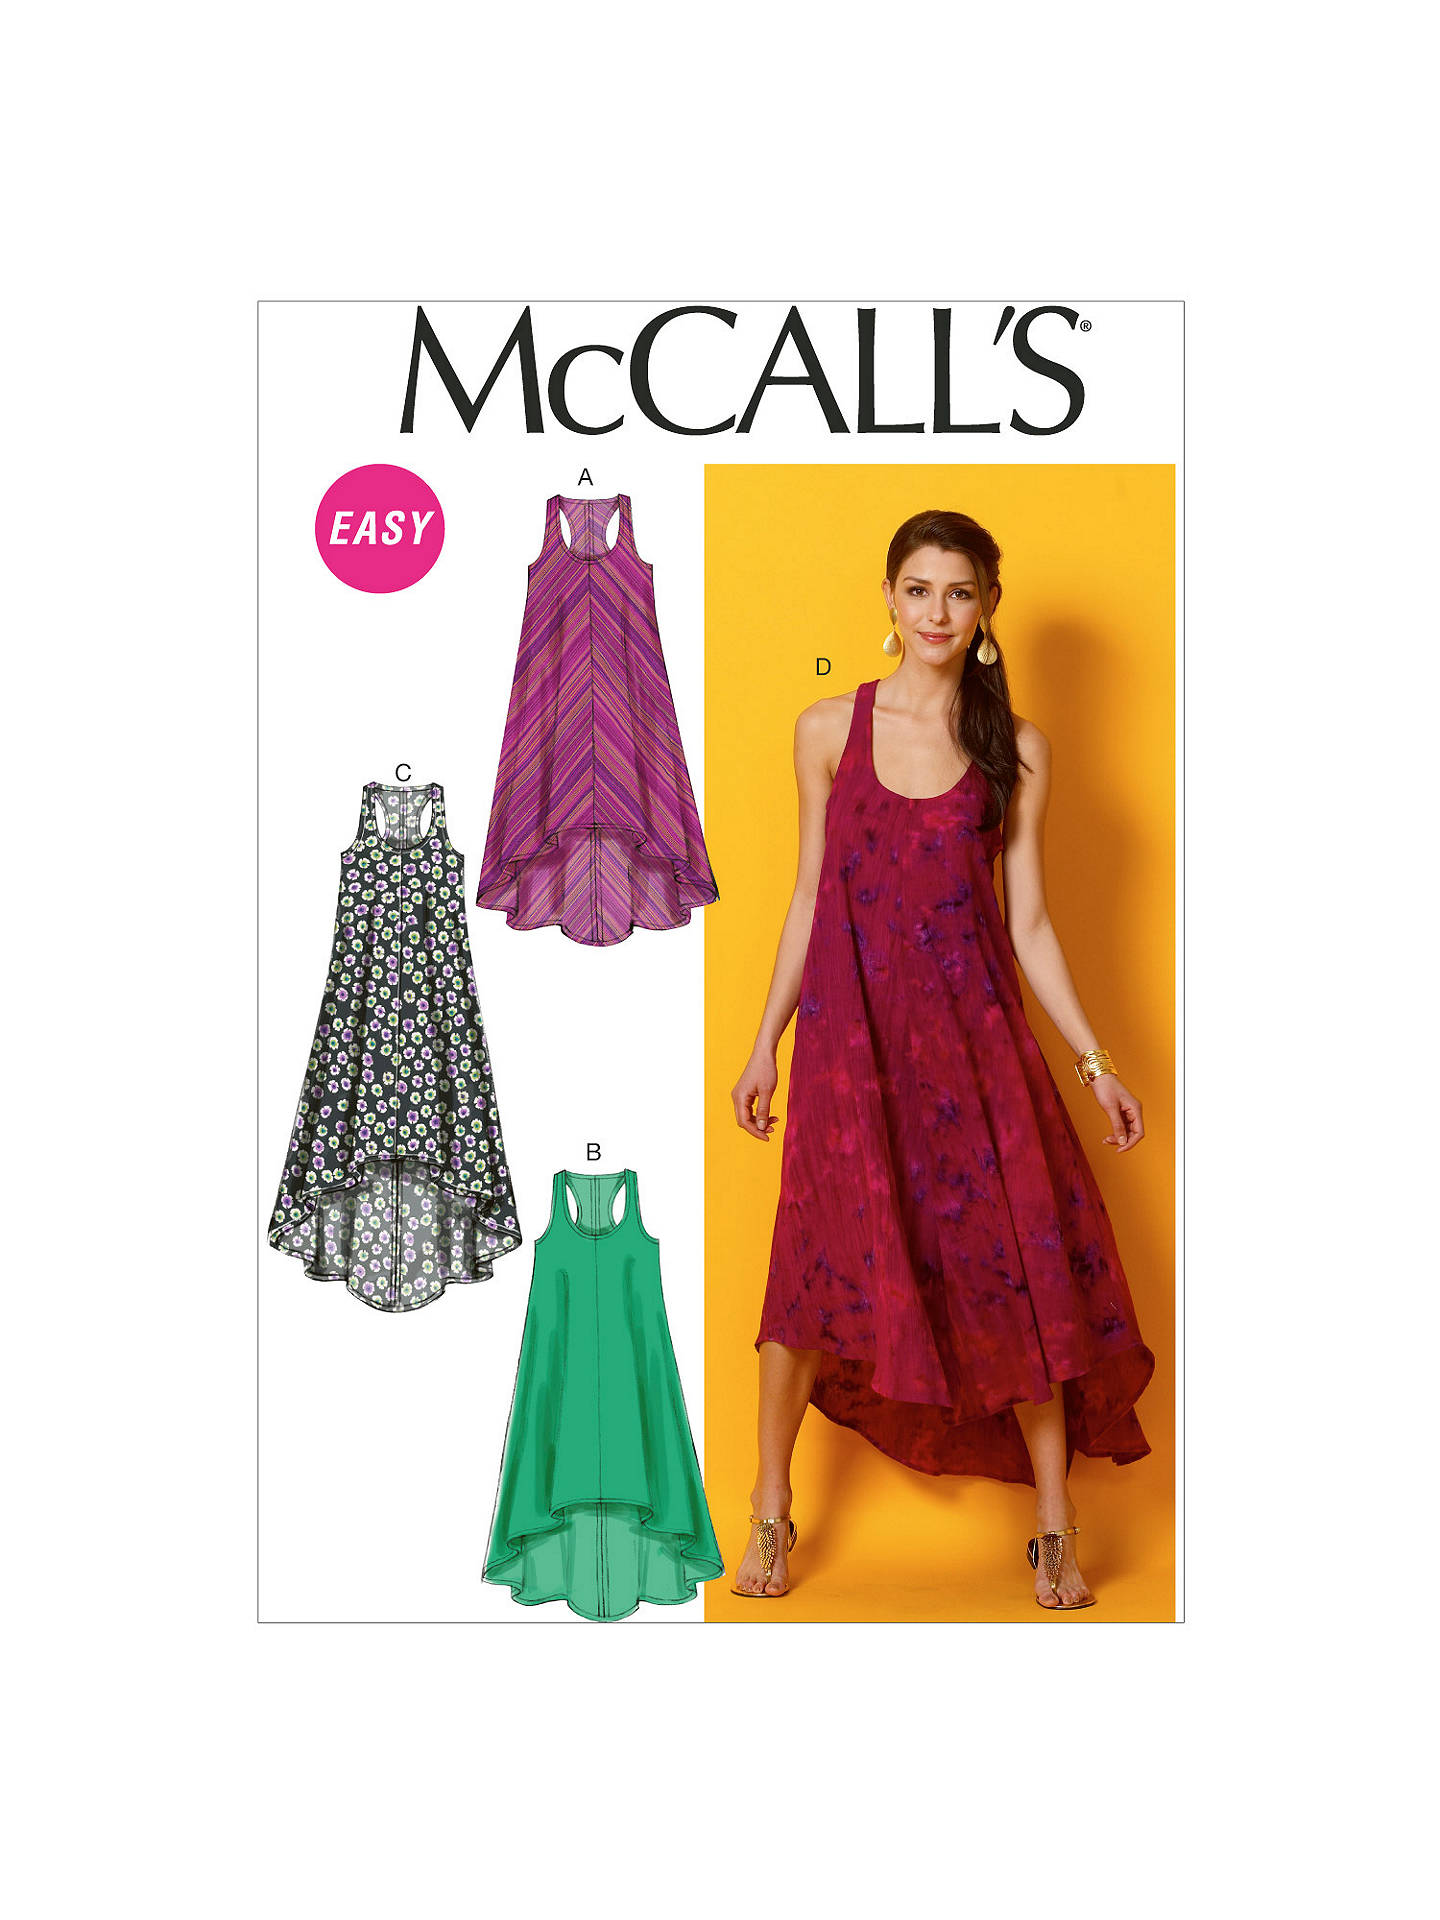 c407f8615295f Buy McCall's Scoop Neck Racer Back Asymmetric Dress Sewing Pattern, Y  Online at johnlewis.